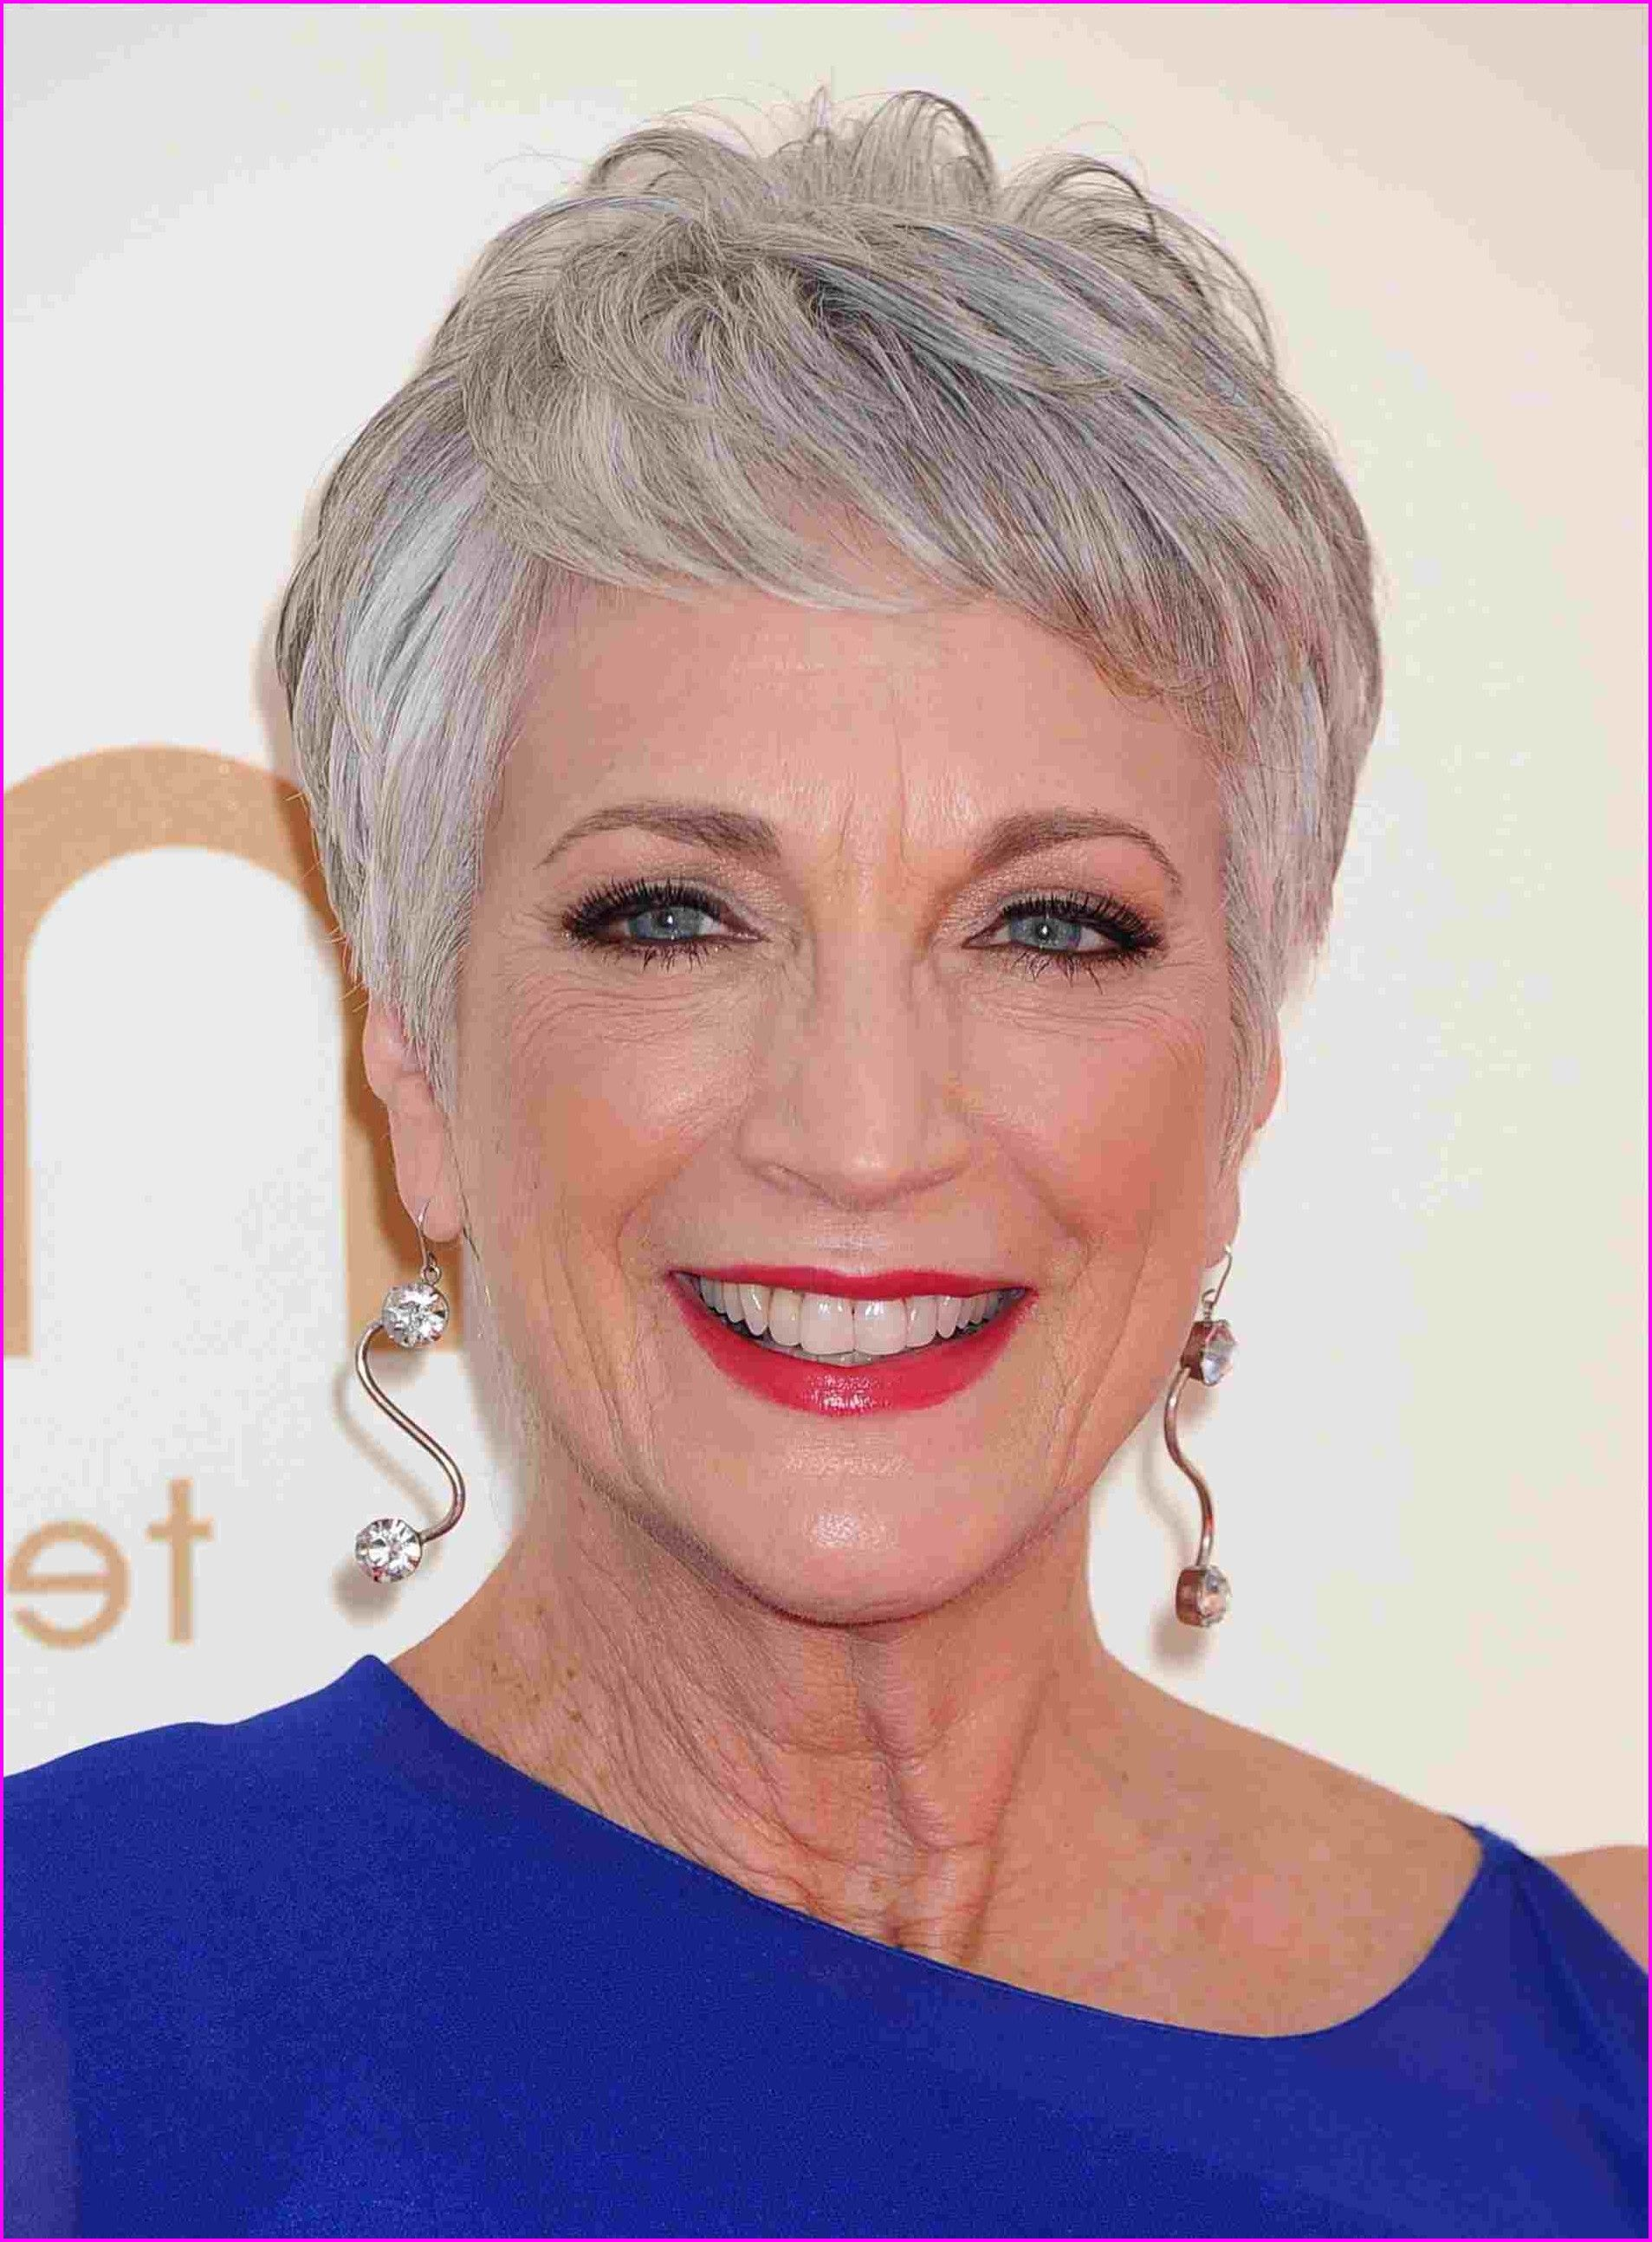 Edgy short hairstyles for women over 50 short hairstyles